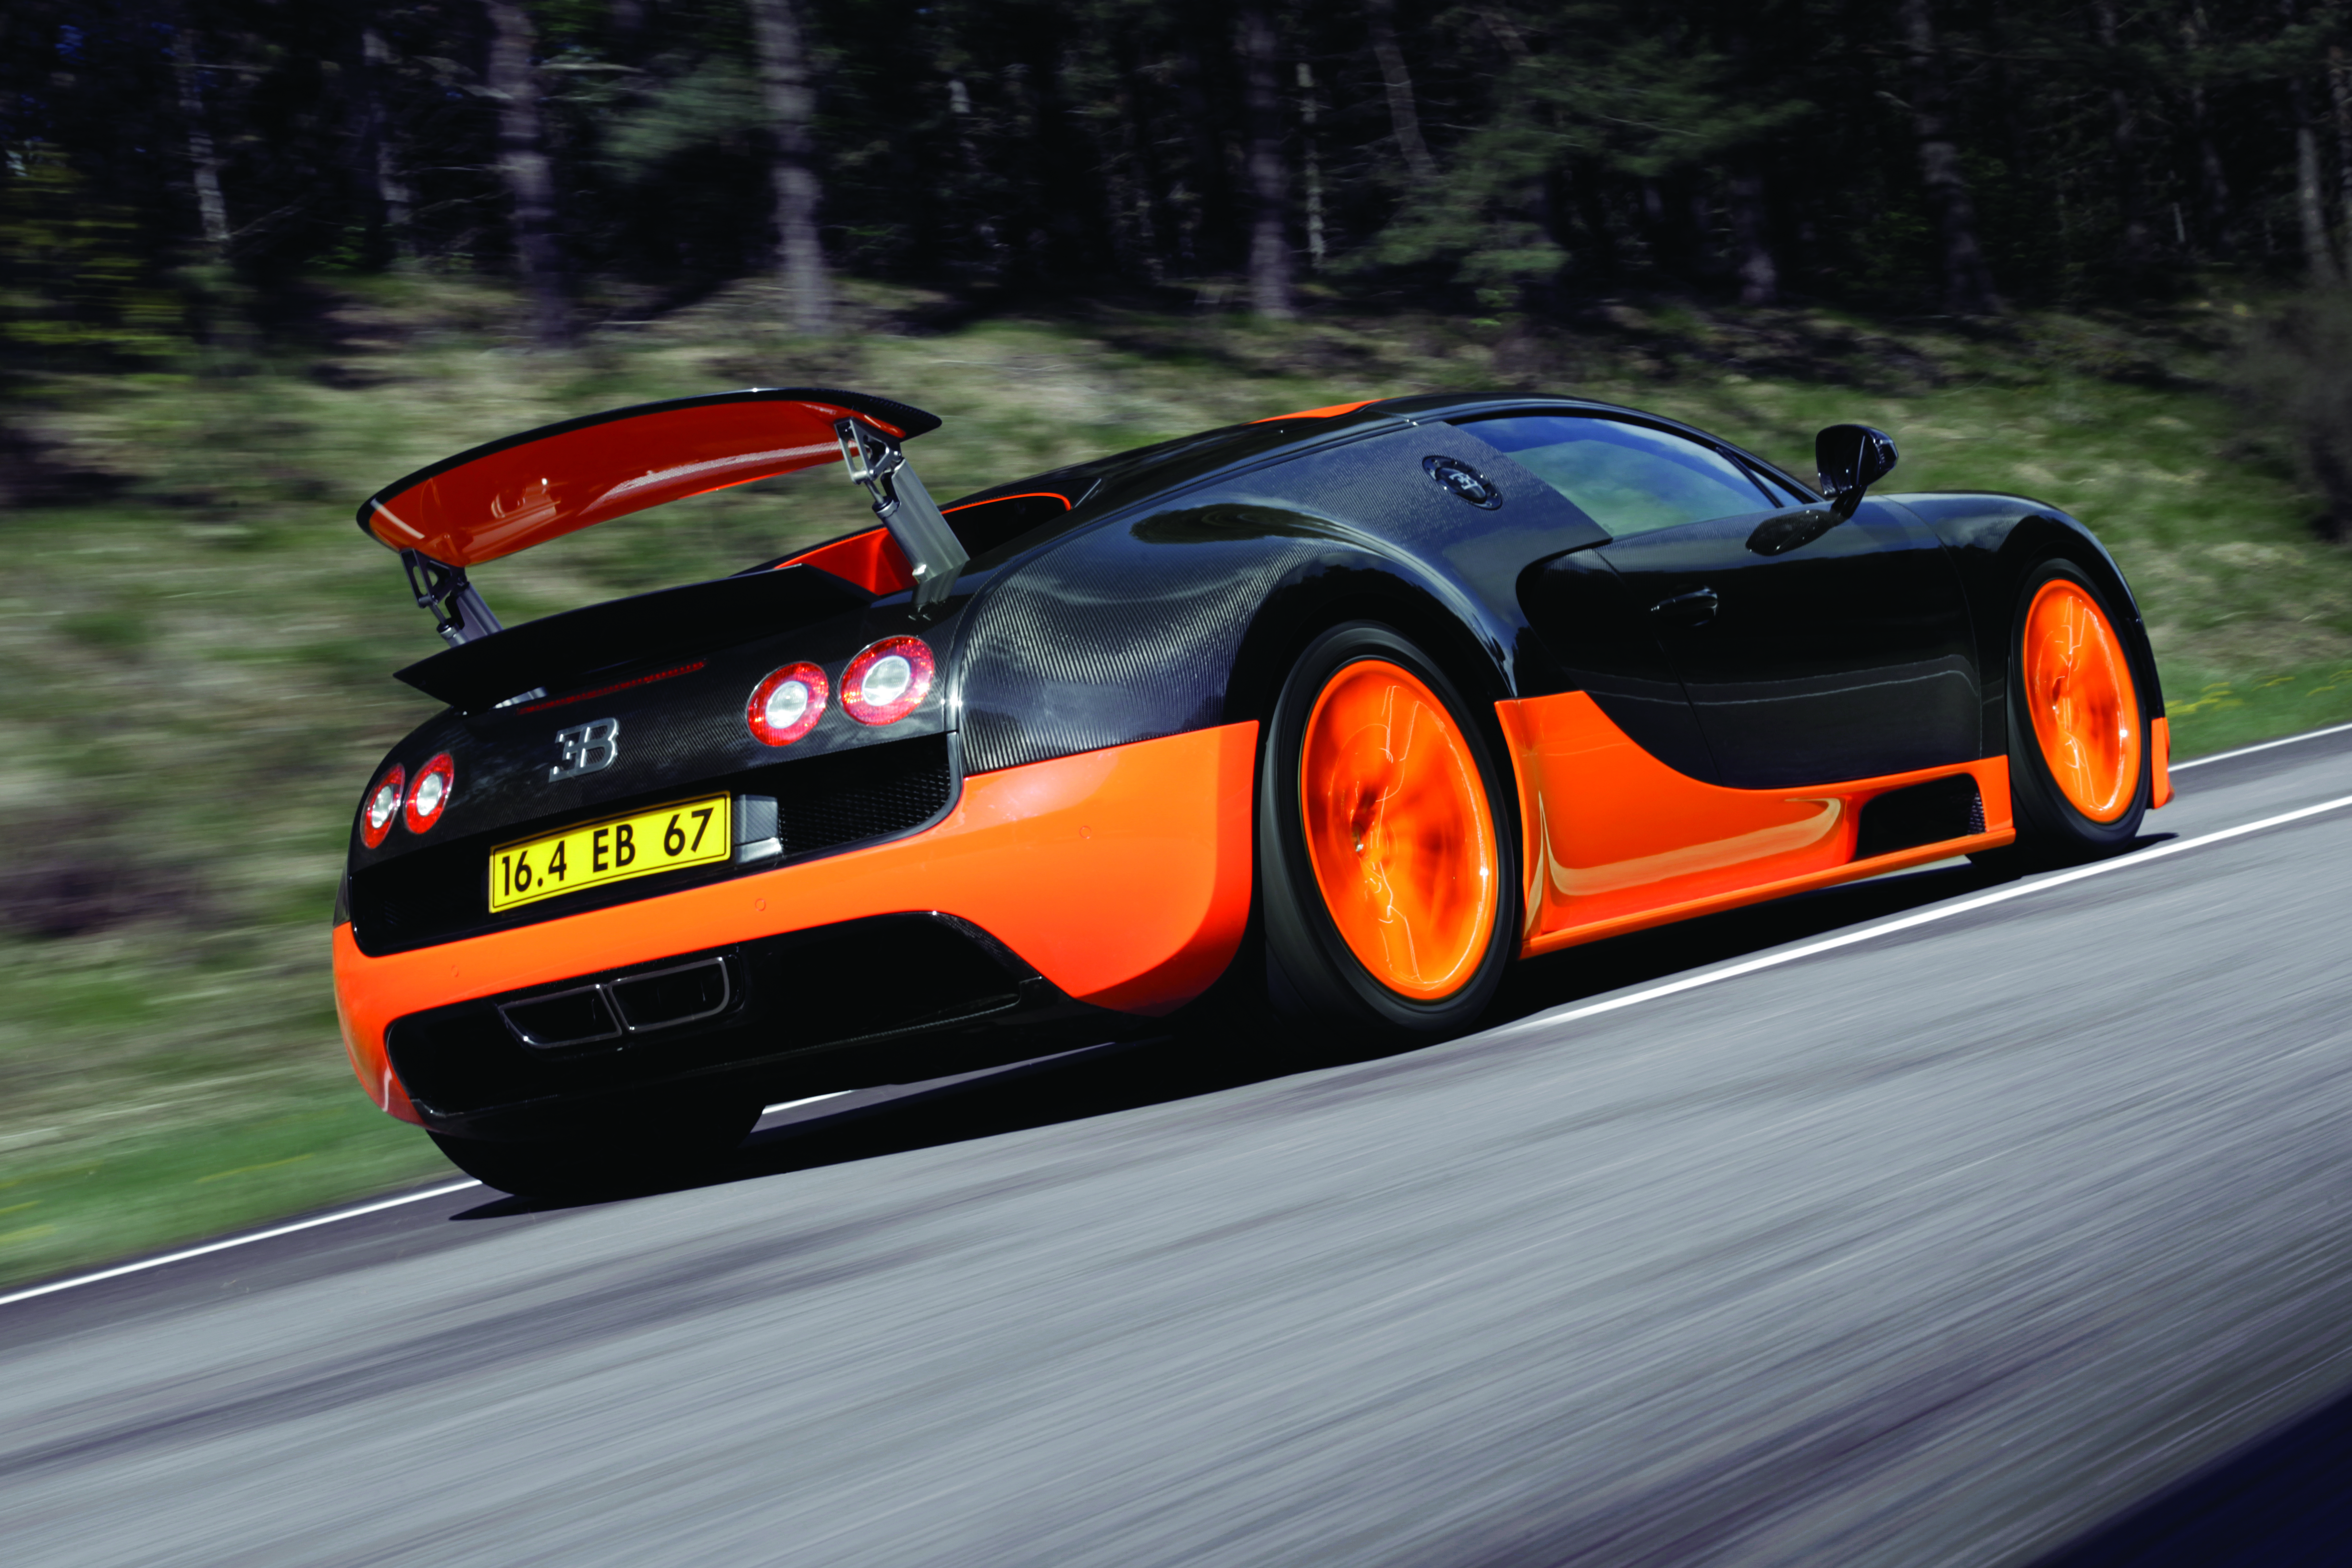 bugatti-veyron-supersport-1 Inspiring Bugatti Veyron 16.4 Grand Sport Vitesse Fiche Technique Cars Trend